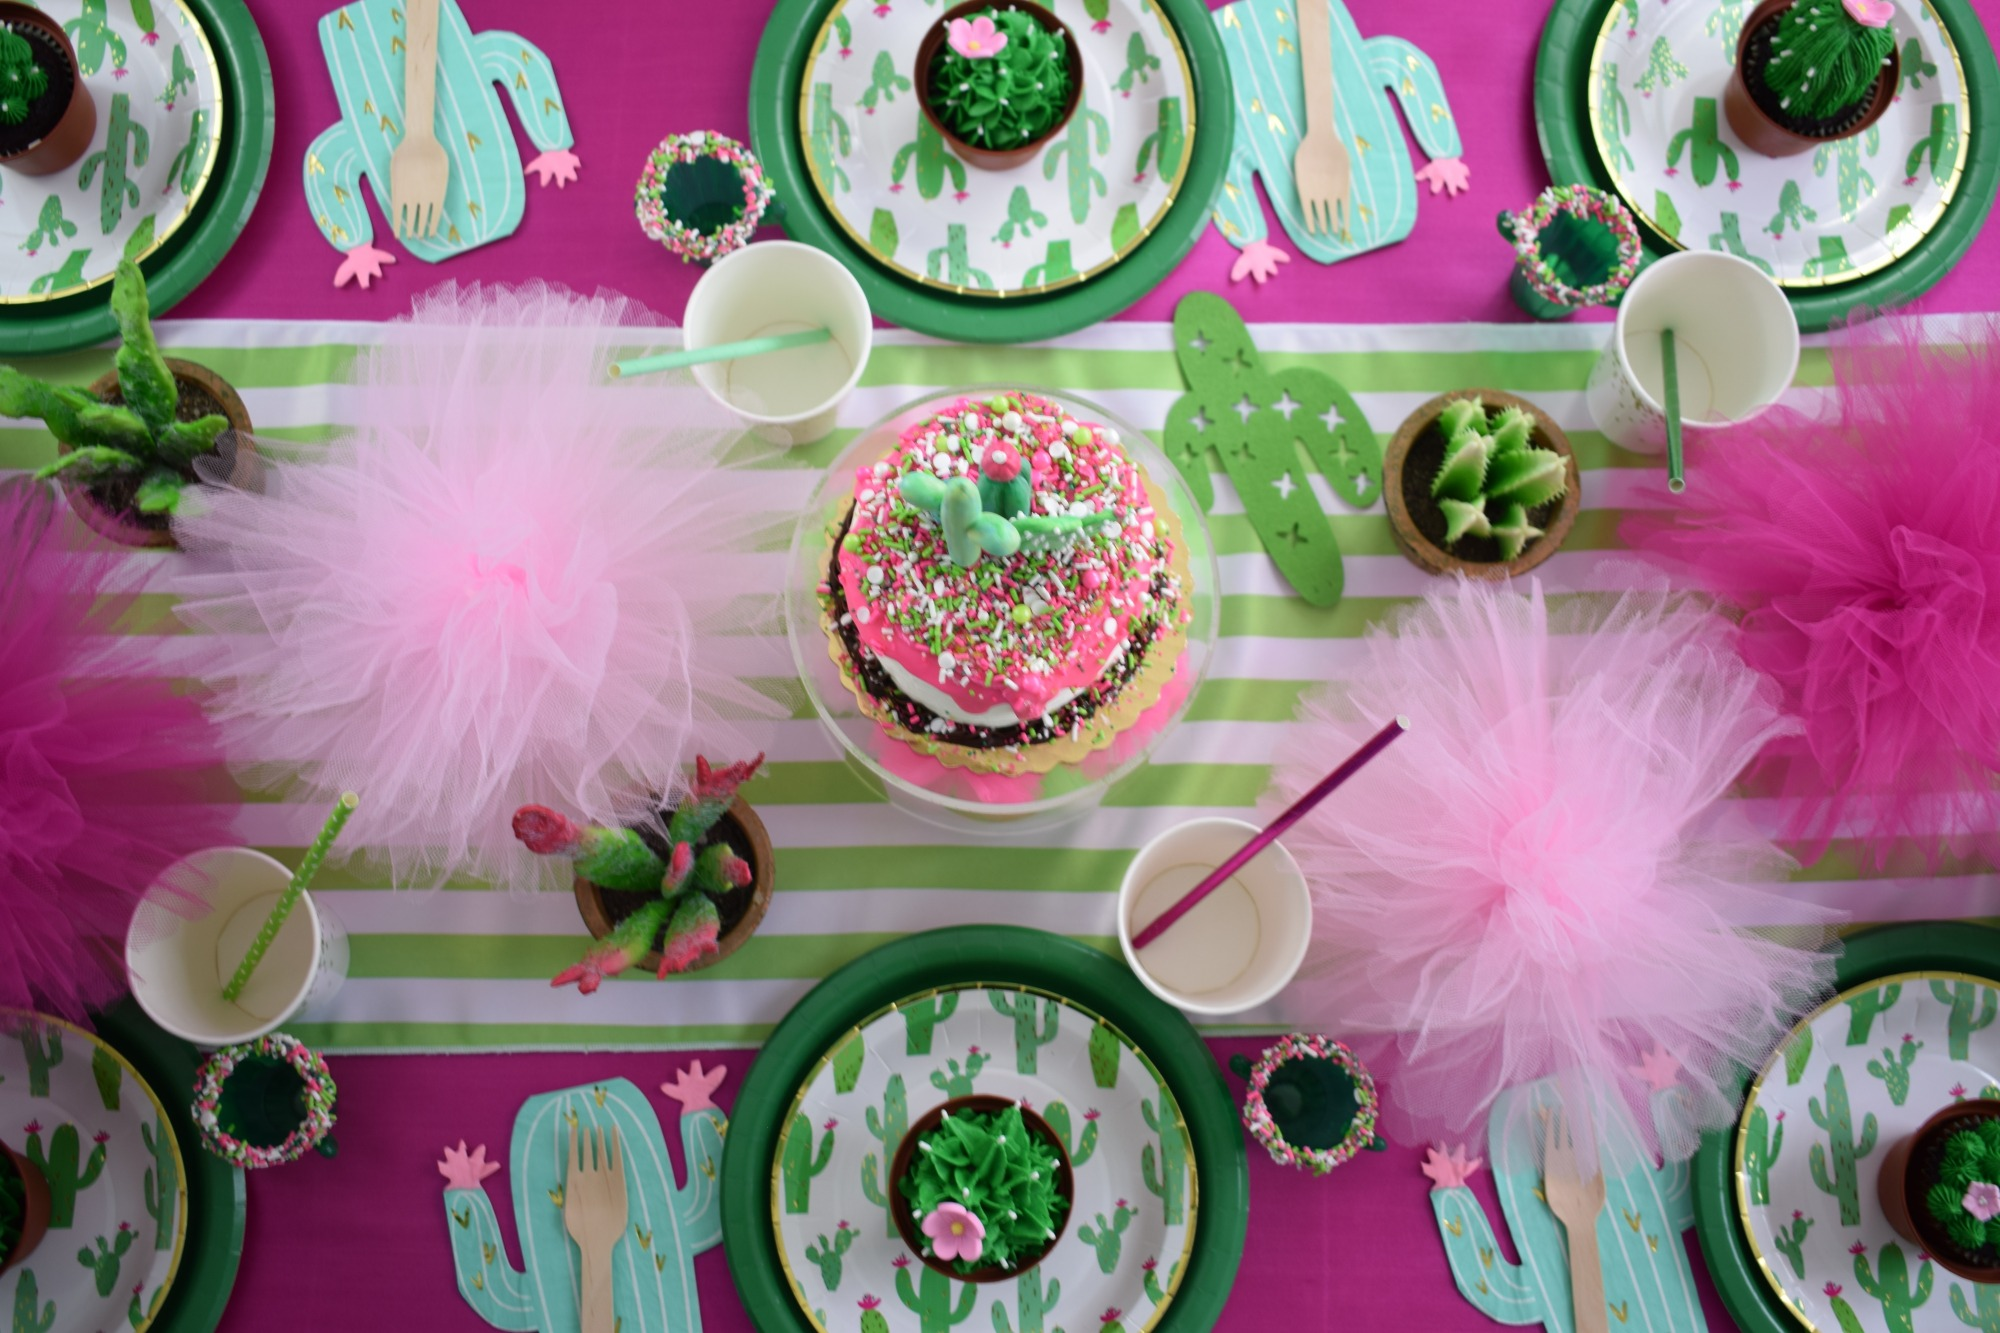 Tablescape & Place Settings (from Above) - Cactus Cutie Party Styled by A Party Made Perfect   Black Twine